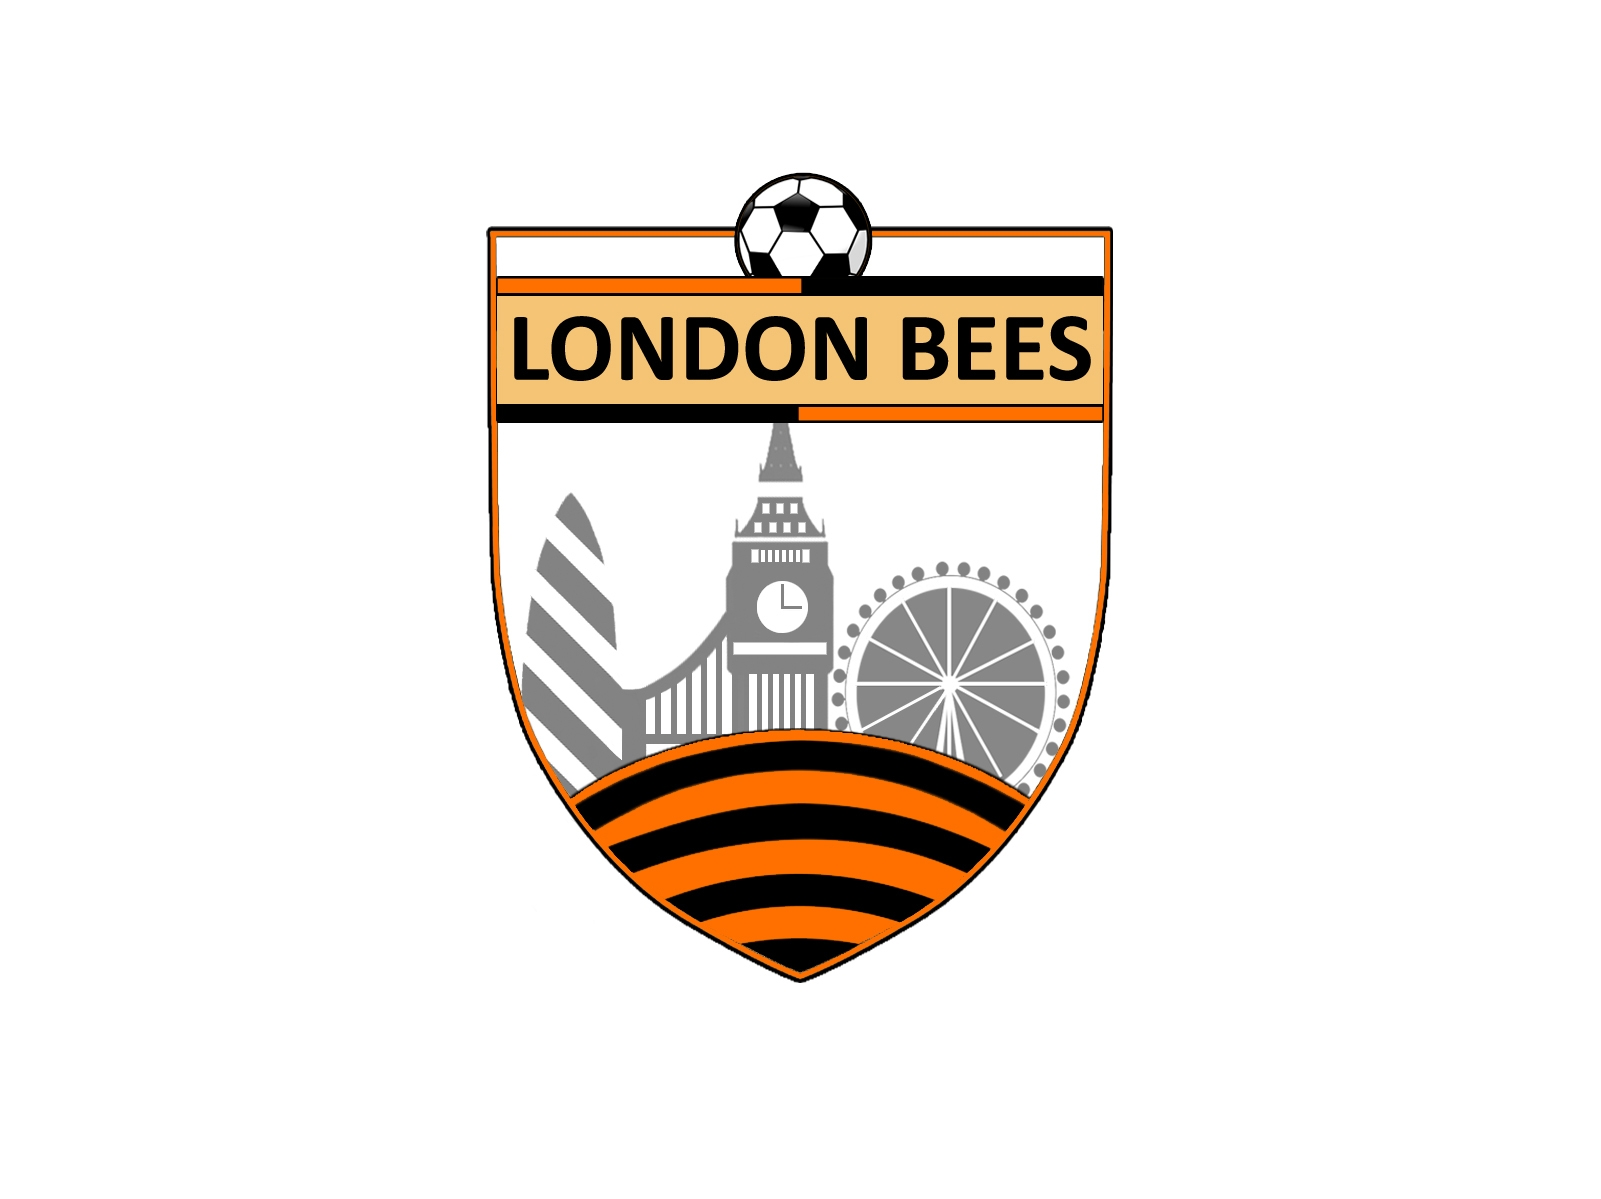 London Bees have appointed Tom Donati as their new head coach ahead of Women's Super League season